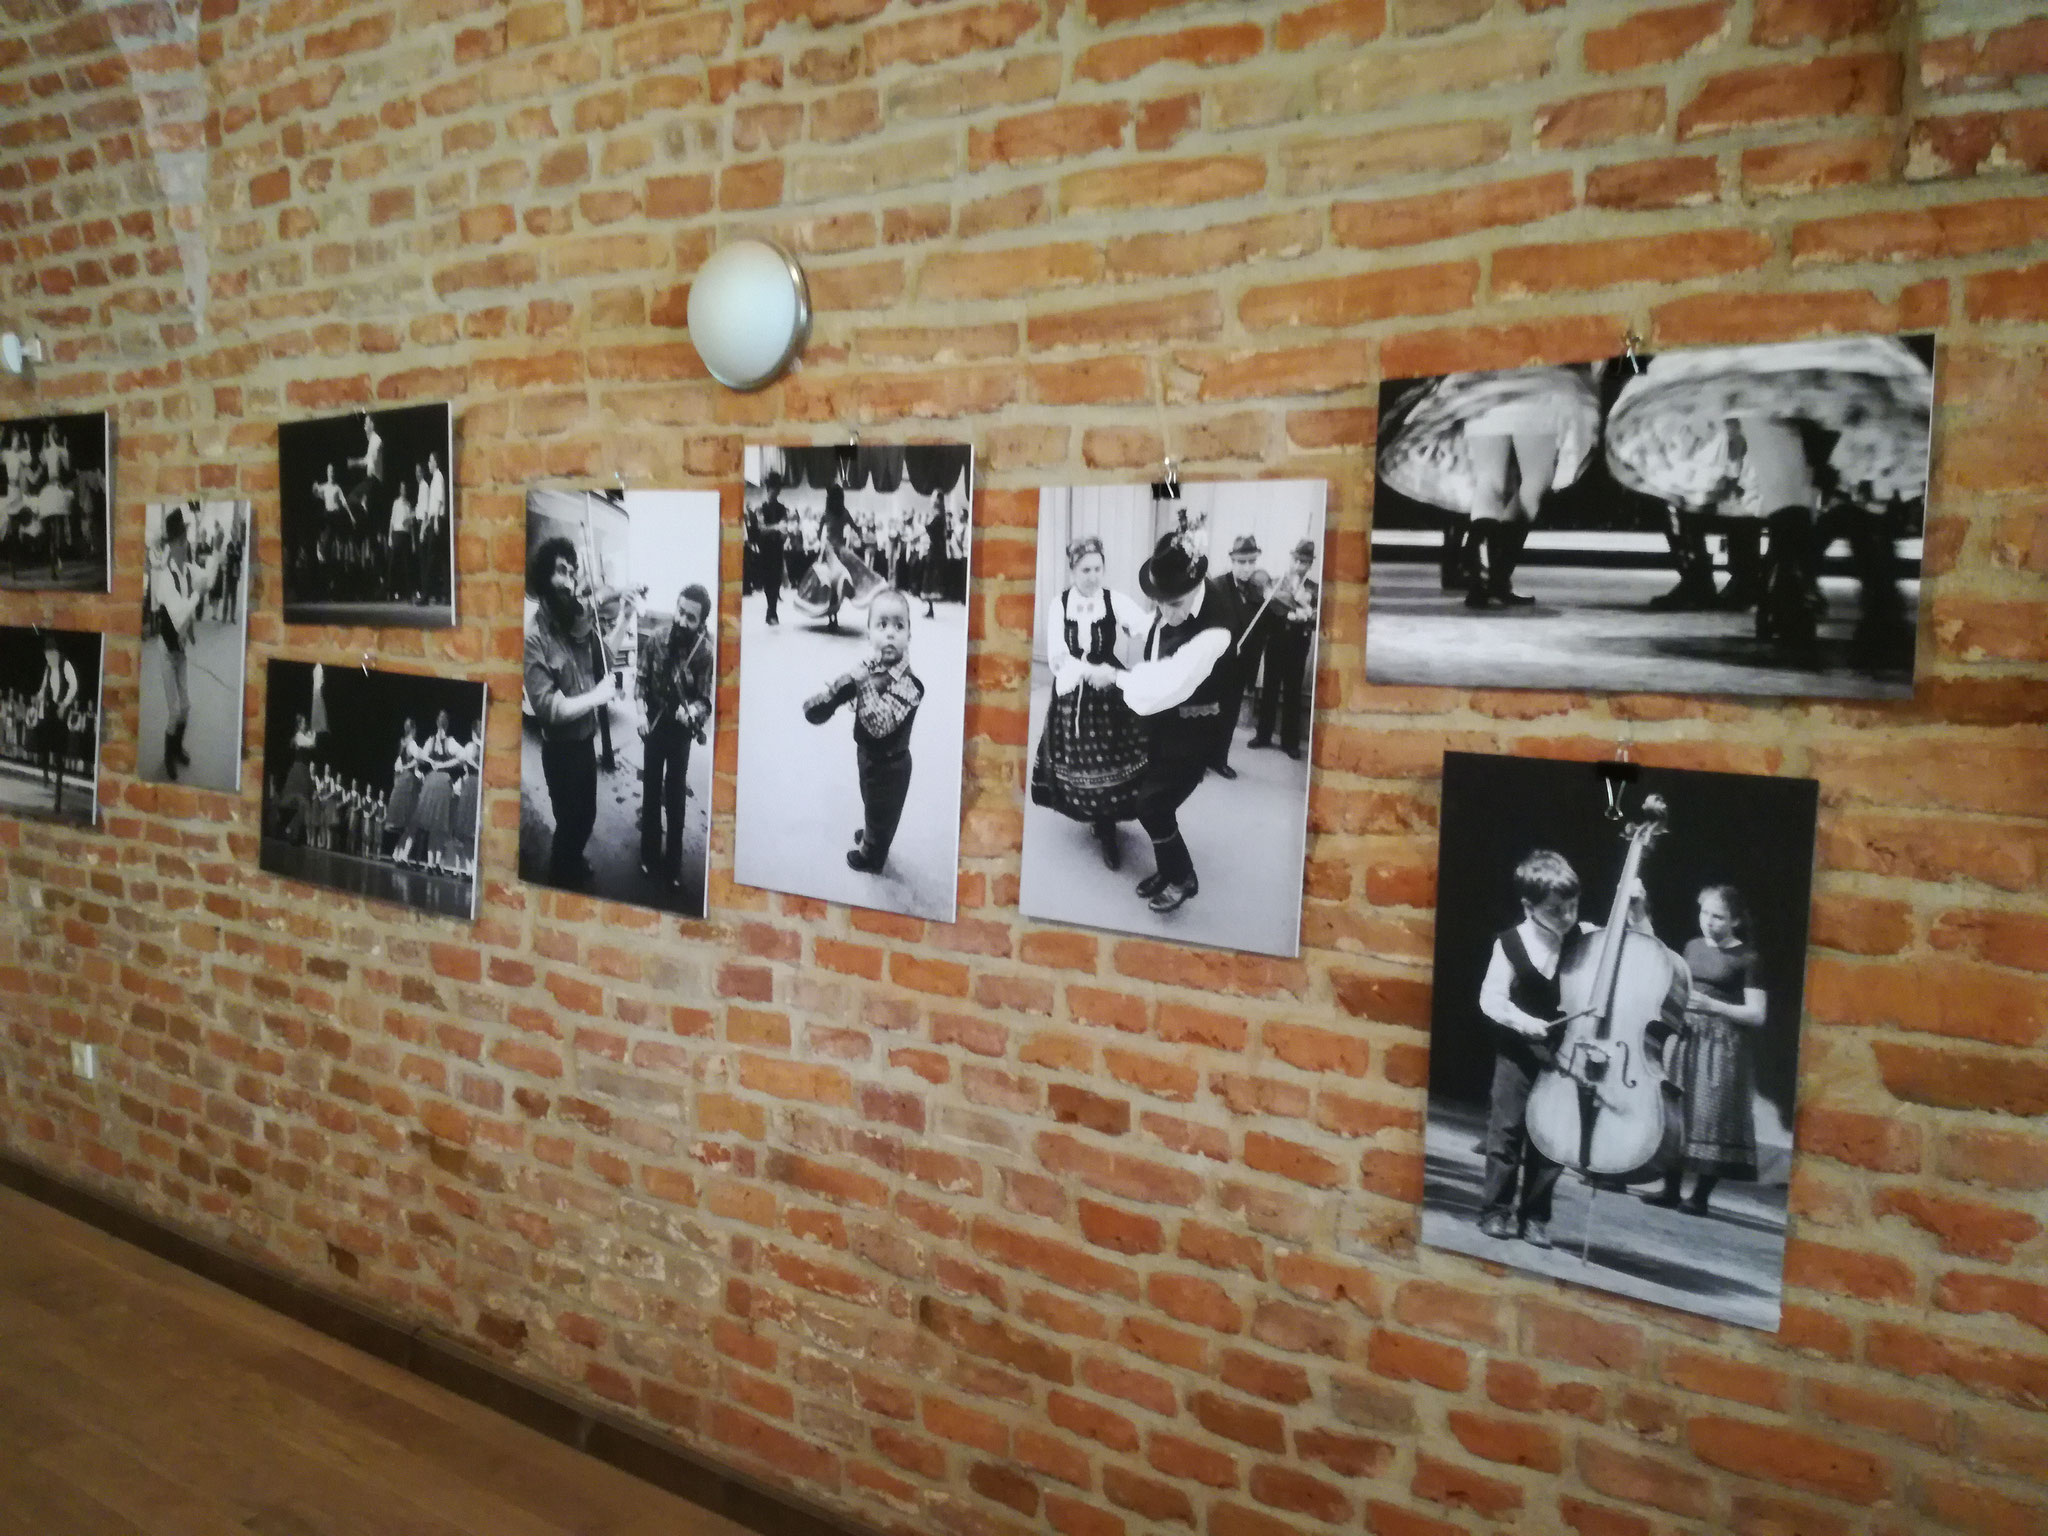 The opening of Süli István's AFIAP (Debrecen - HU) personal exhibit